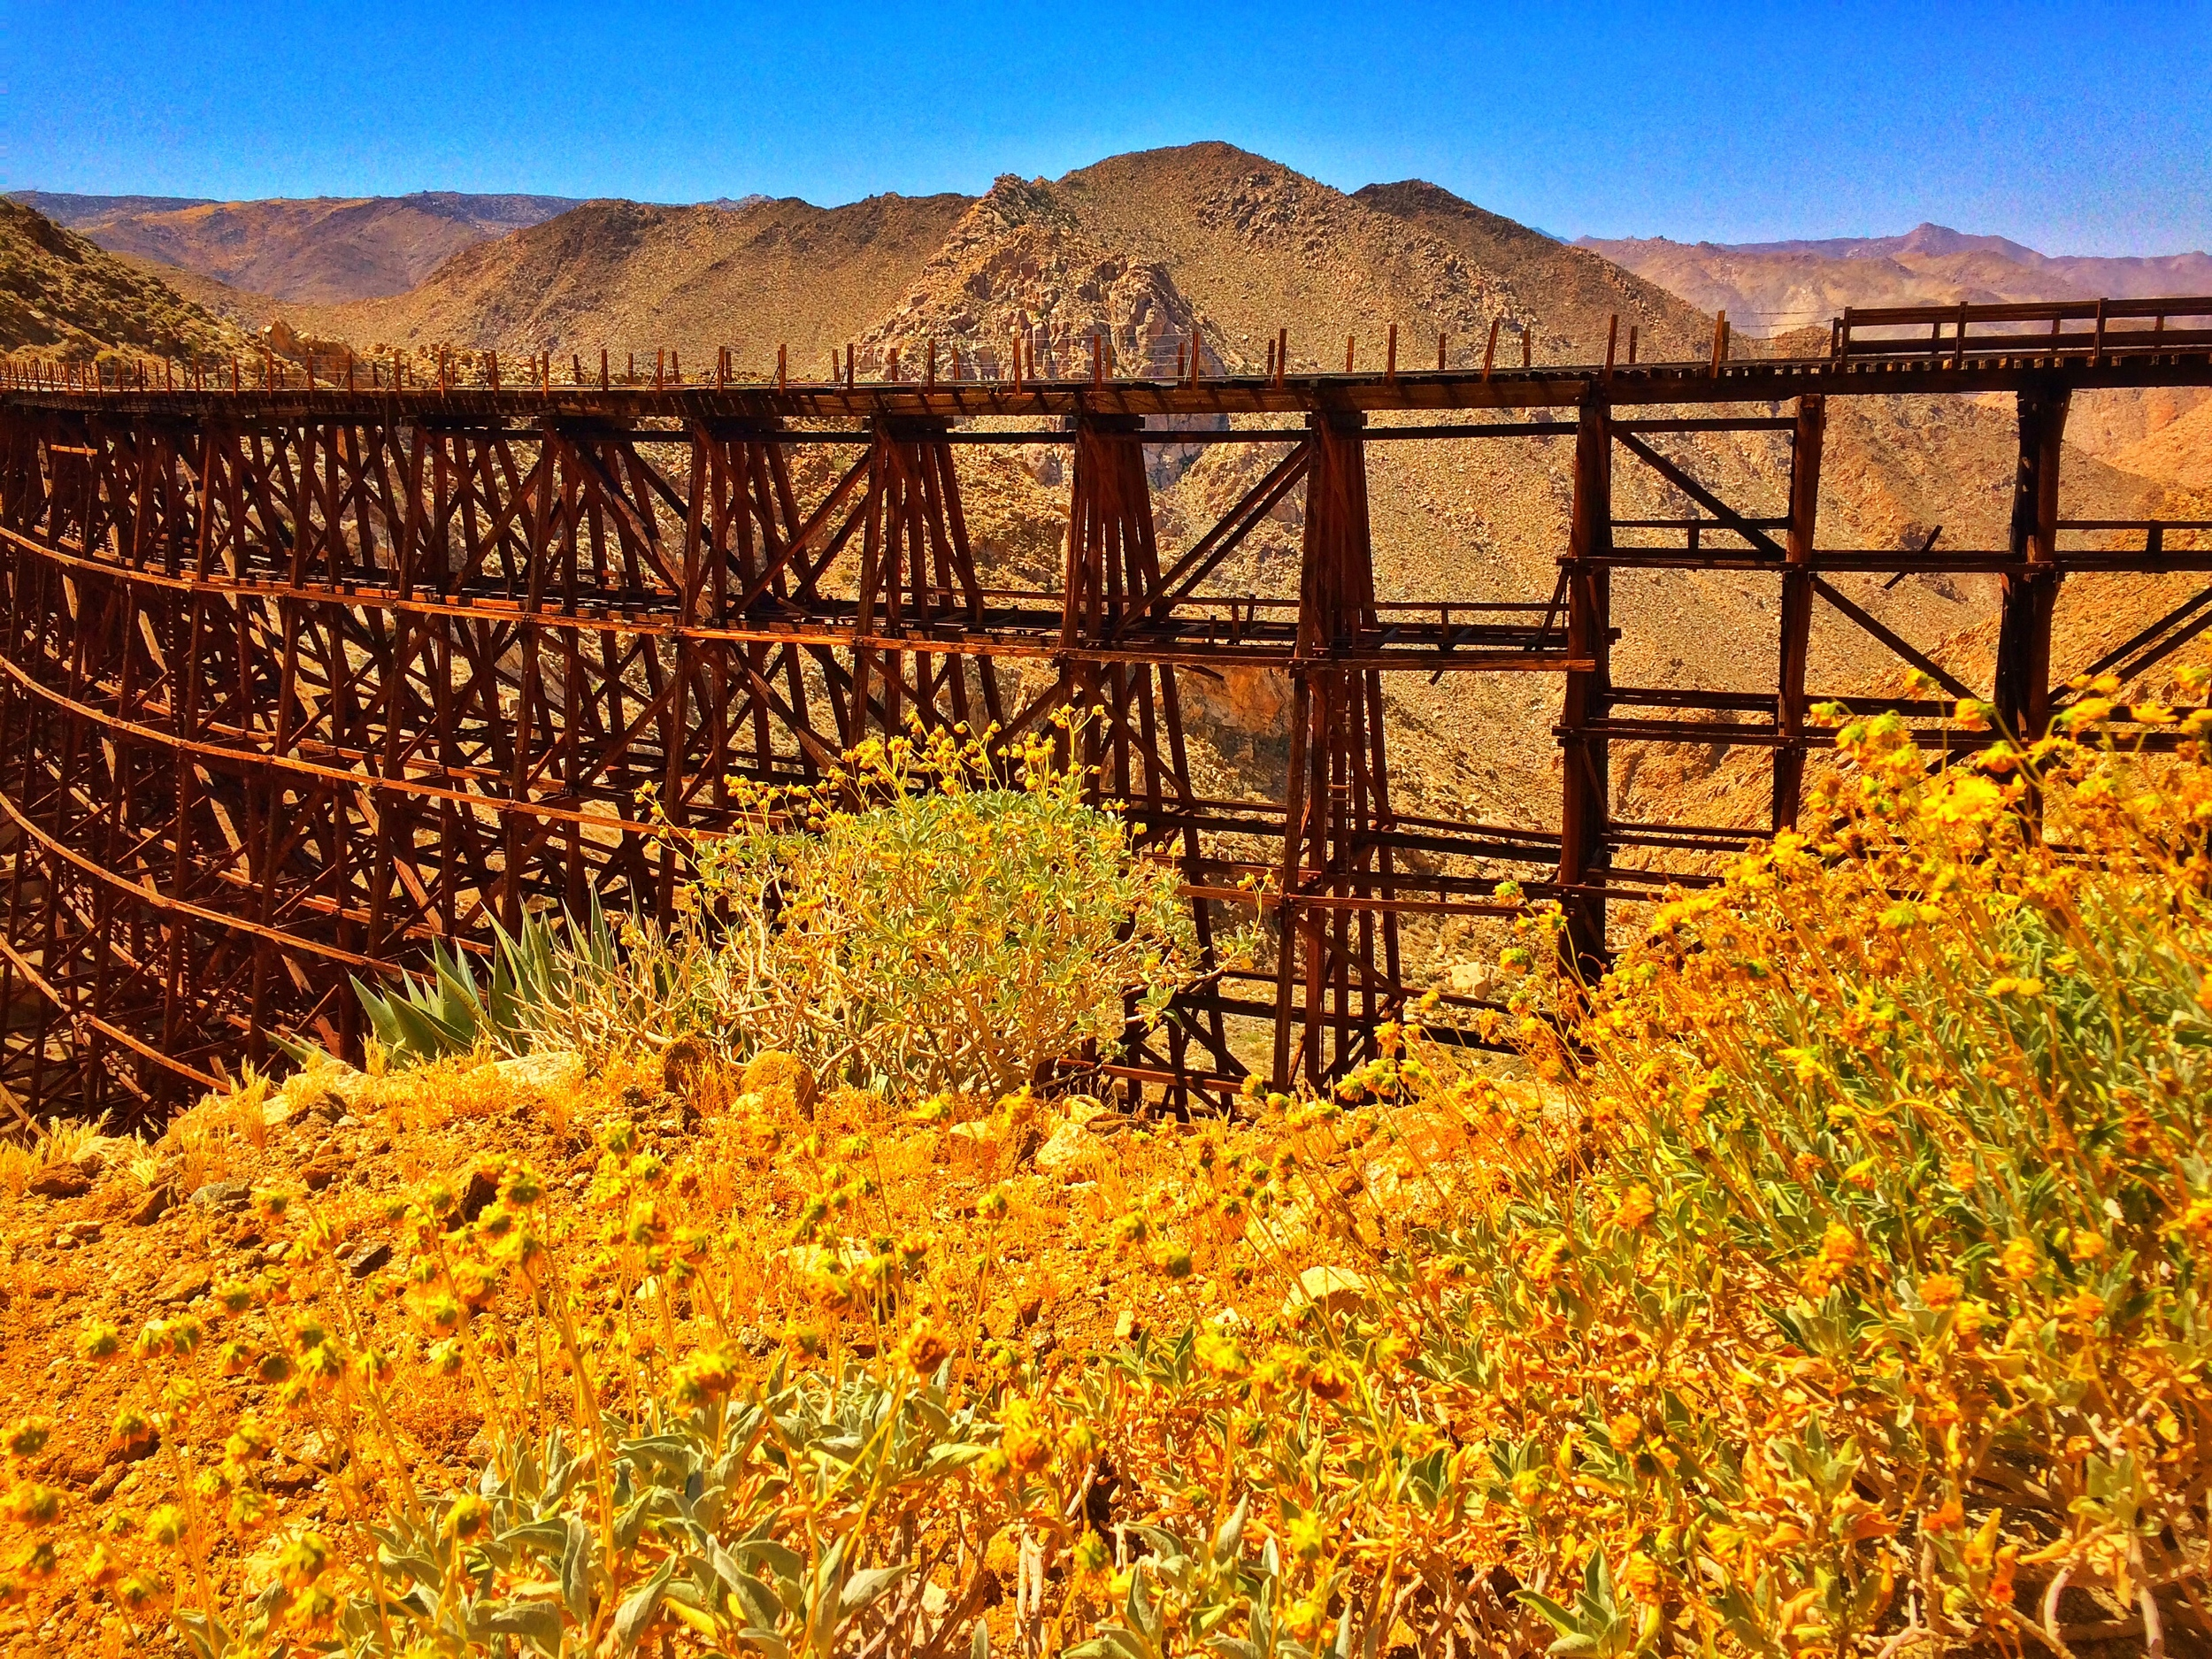 The Anza-Borrego Desert offers many adventure opportunities, like the Goat Canyon Trestle hike, and many overnight opportunities as well.